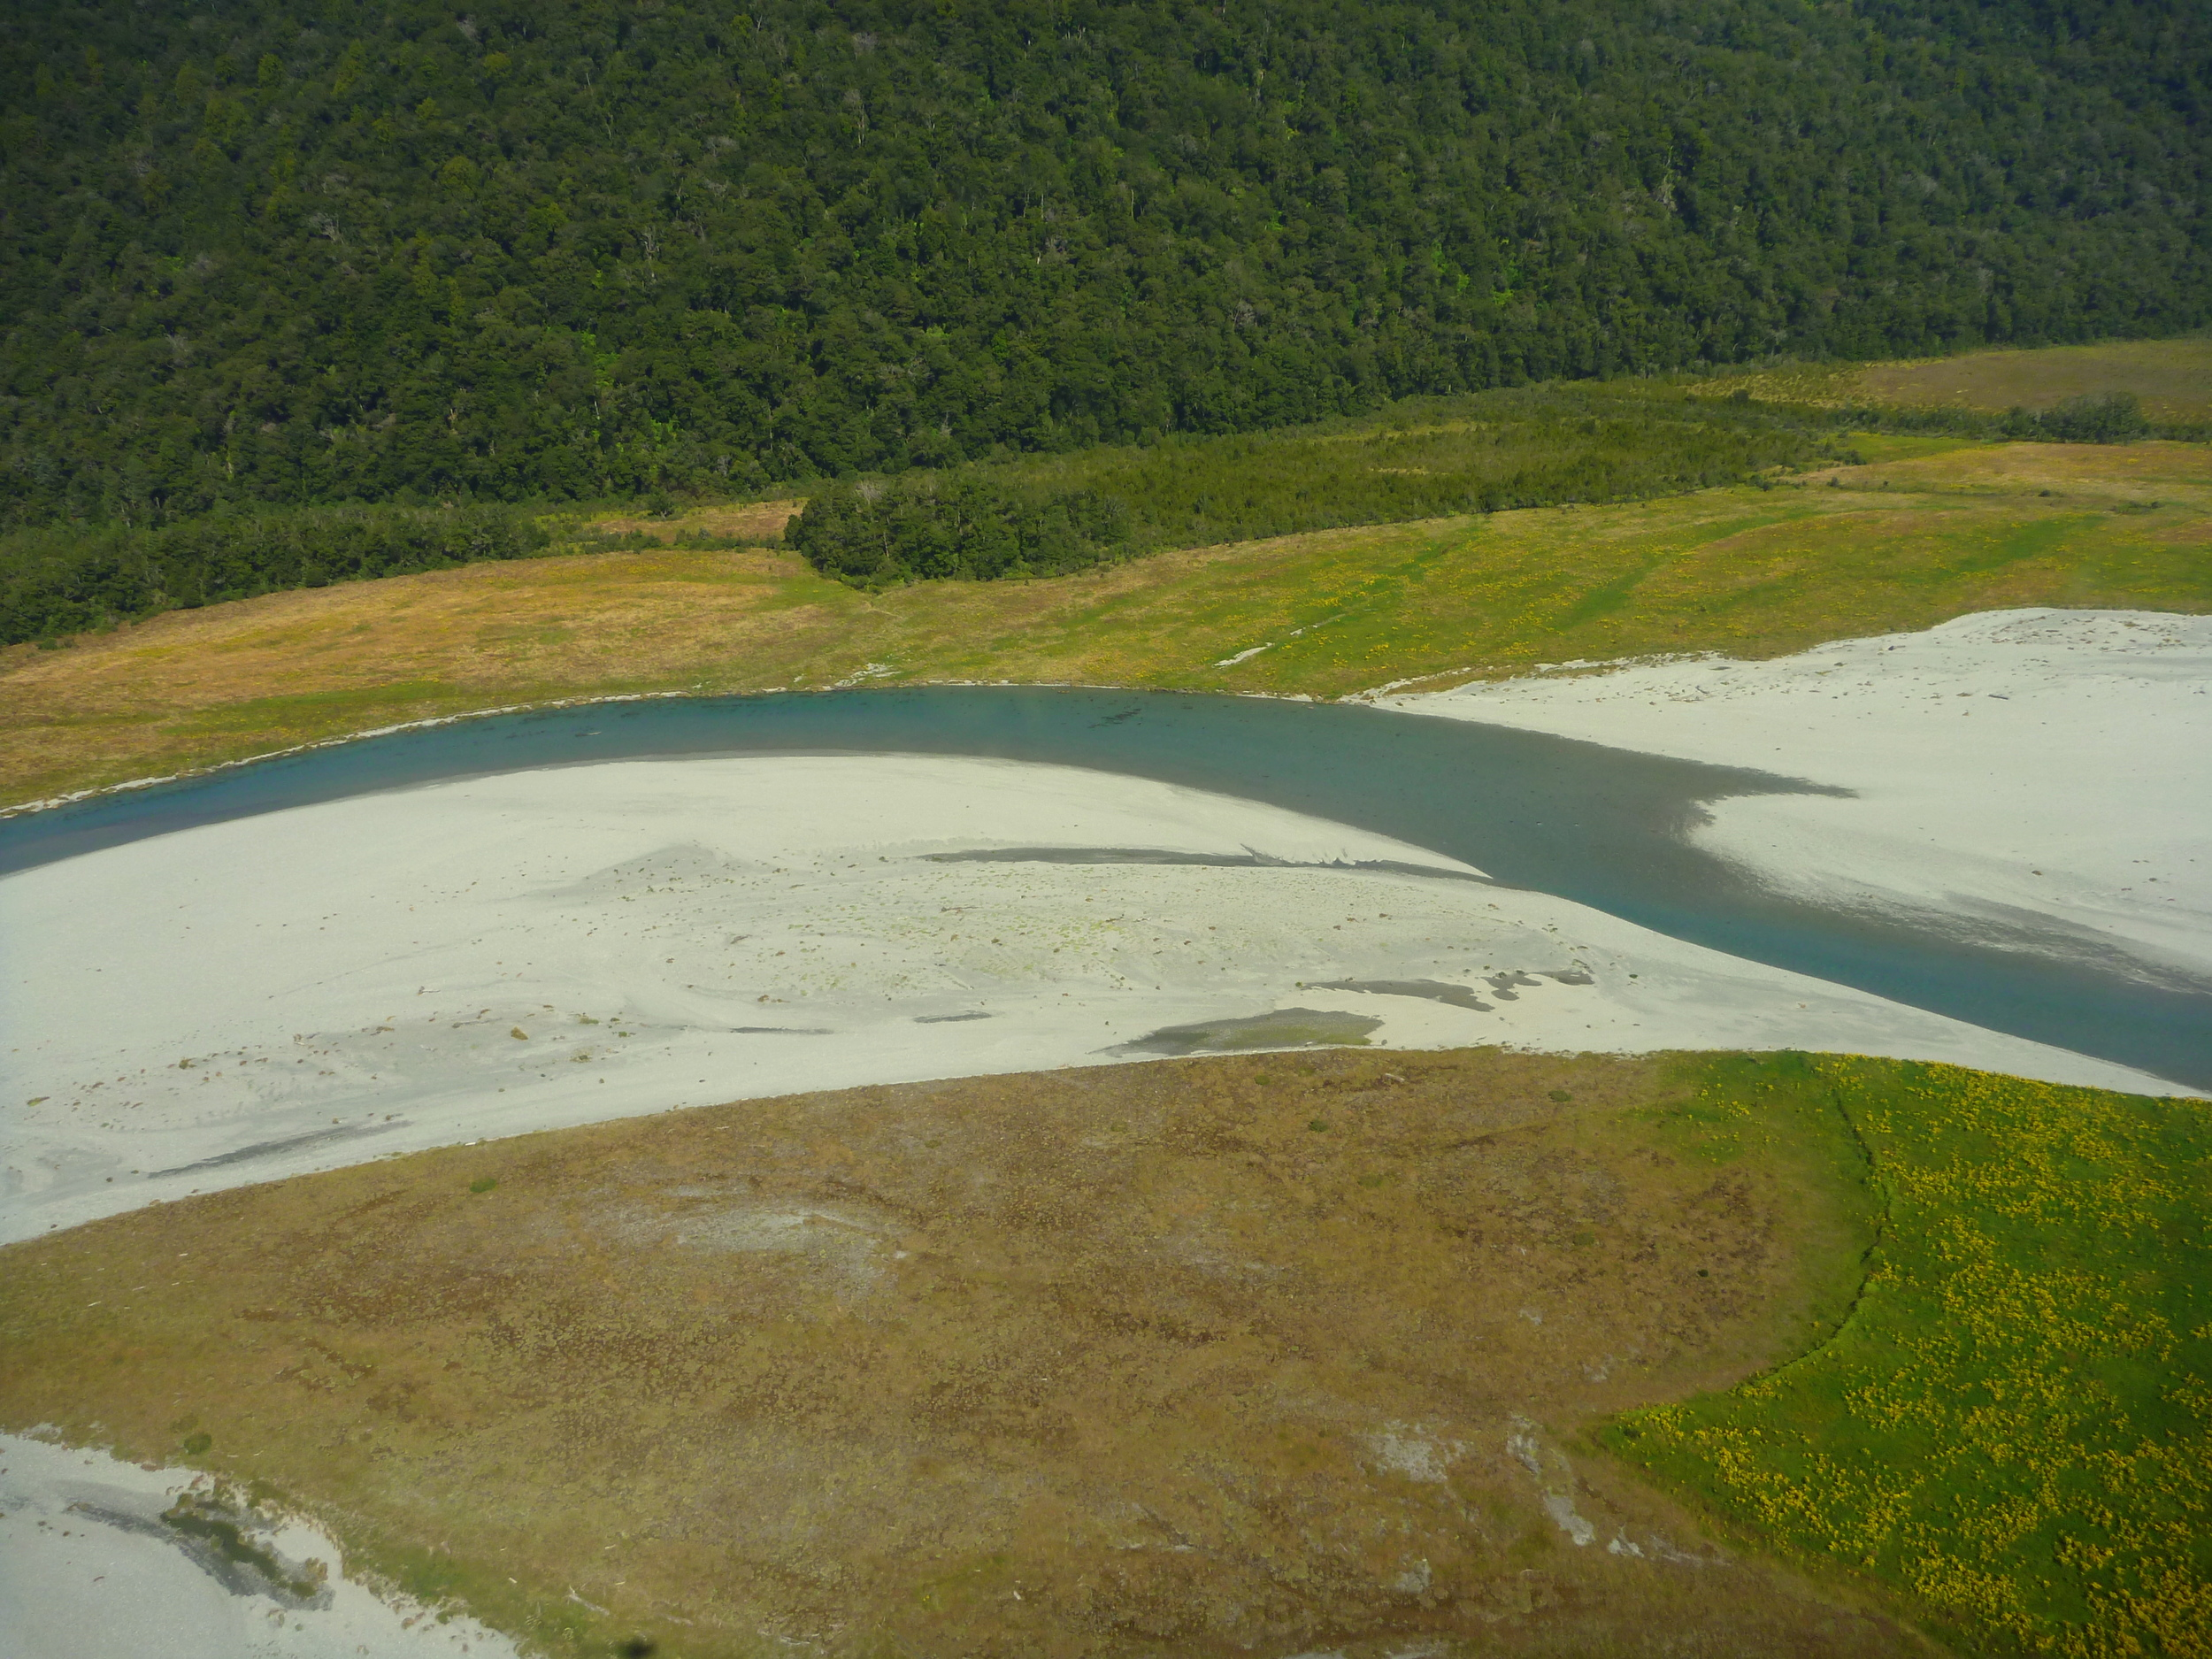 Heli-fishing,New Zealand trout fishing at its best.